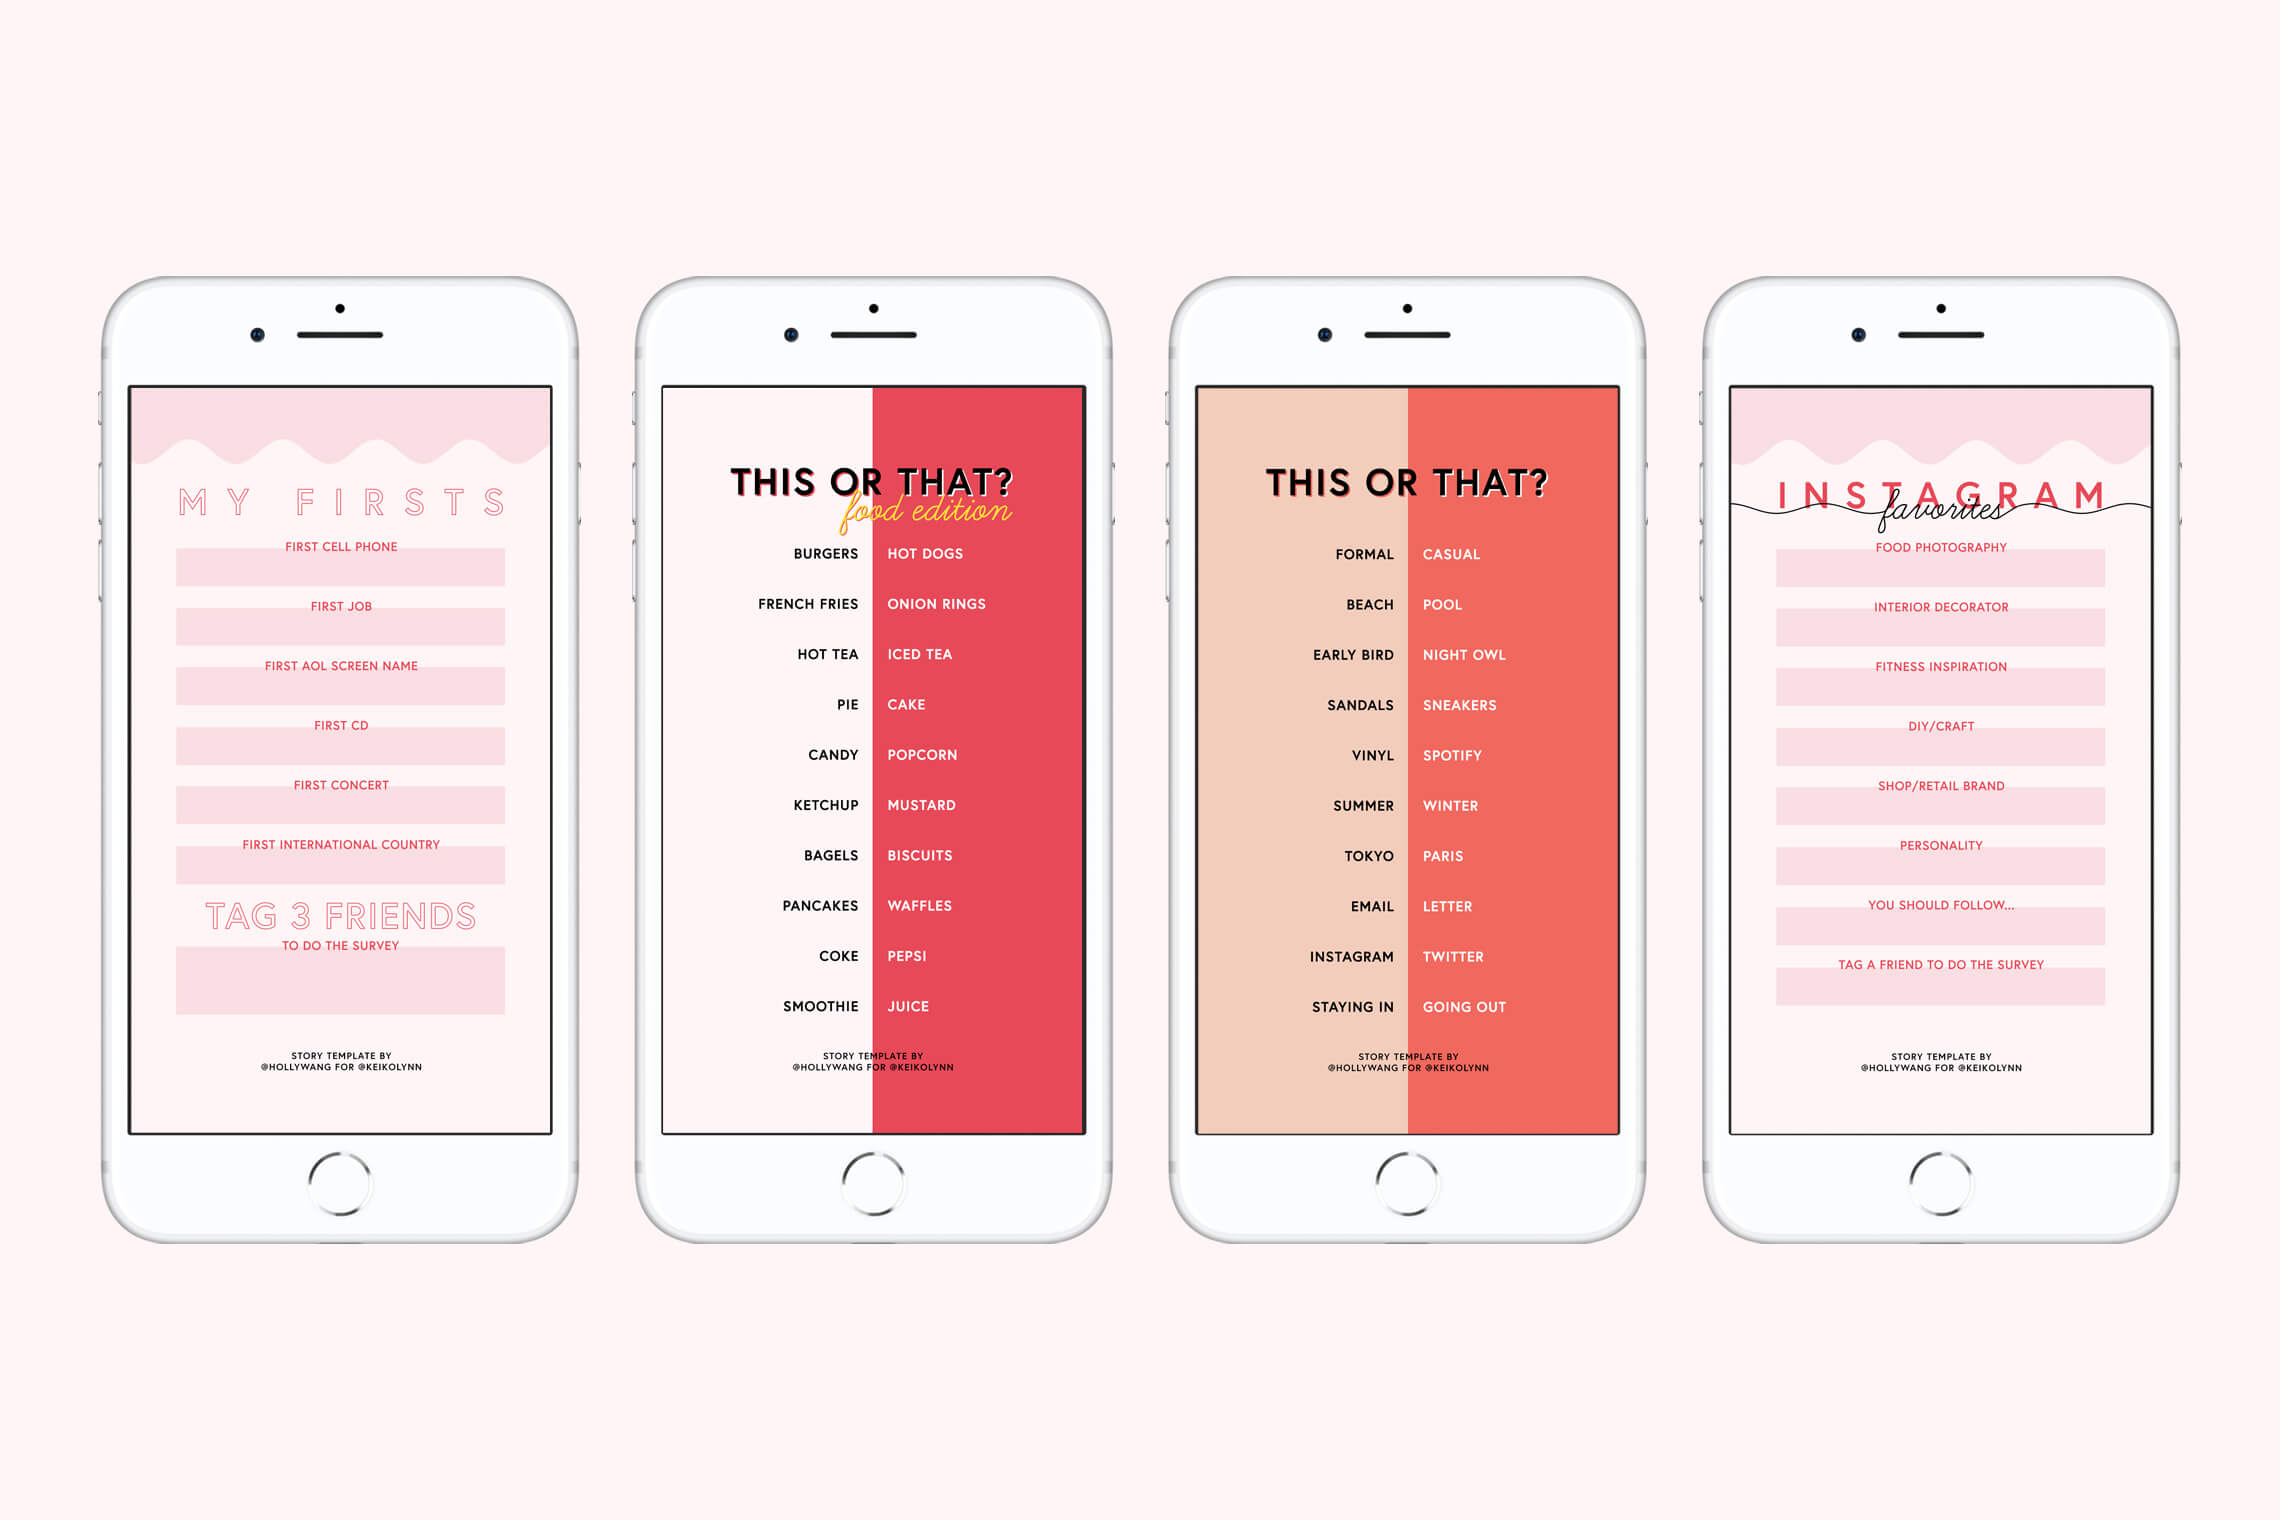 Instagram Story Template, More This or That Surveys - Keiko Lynn